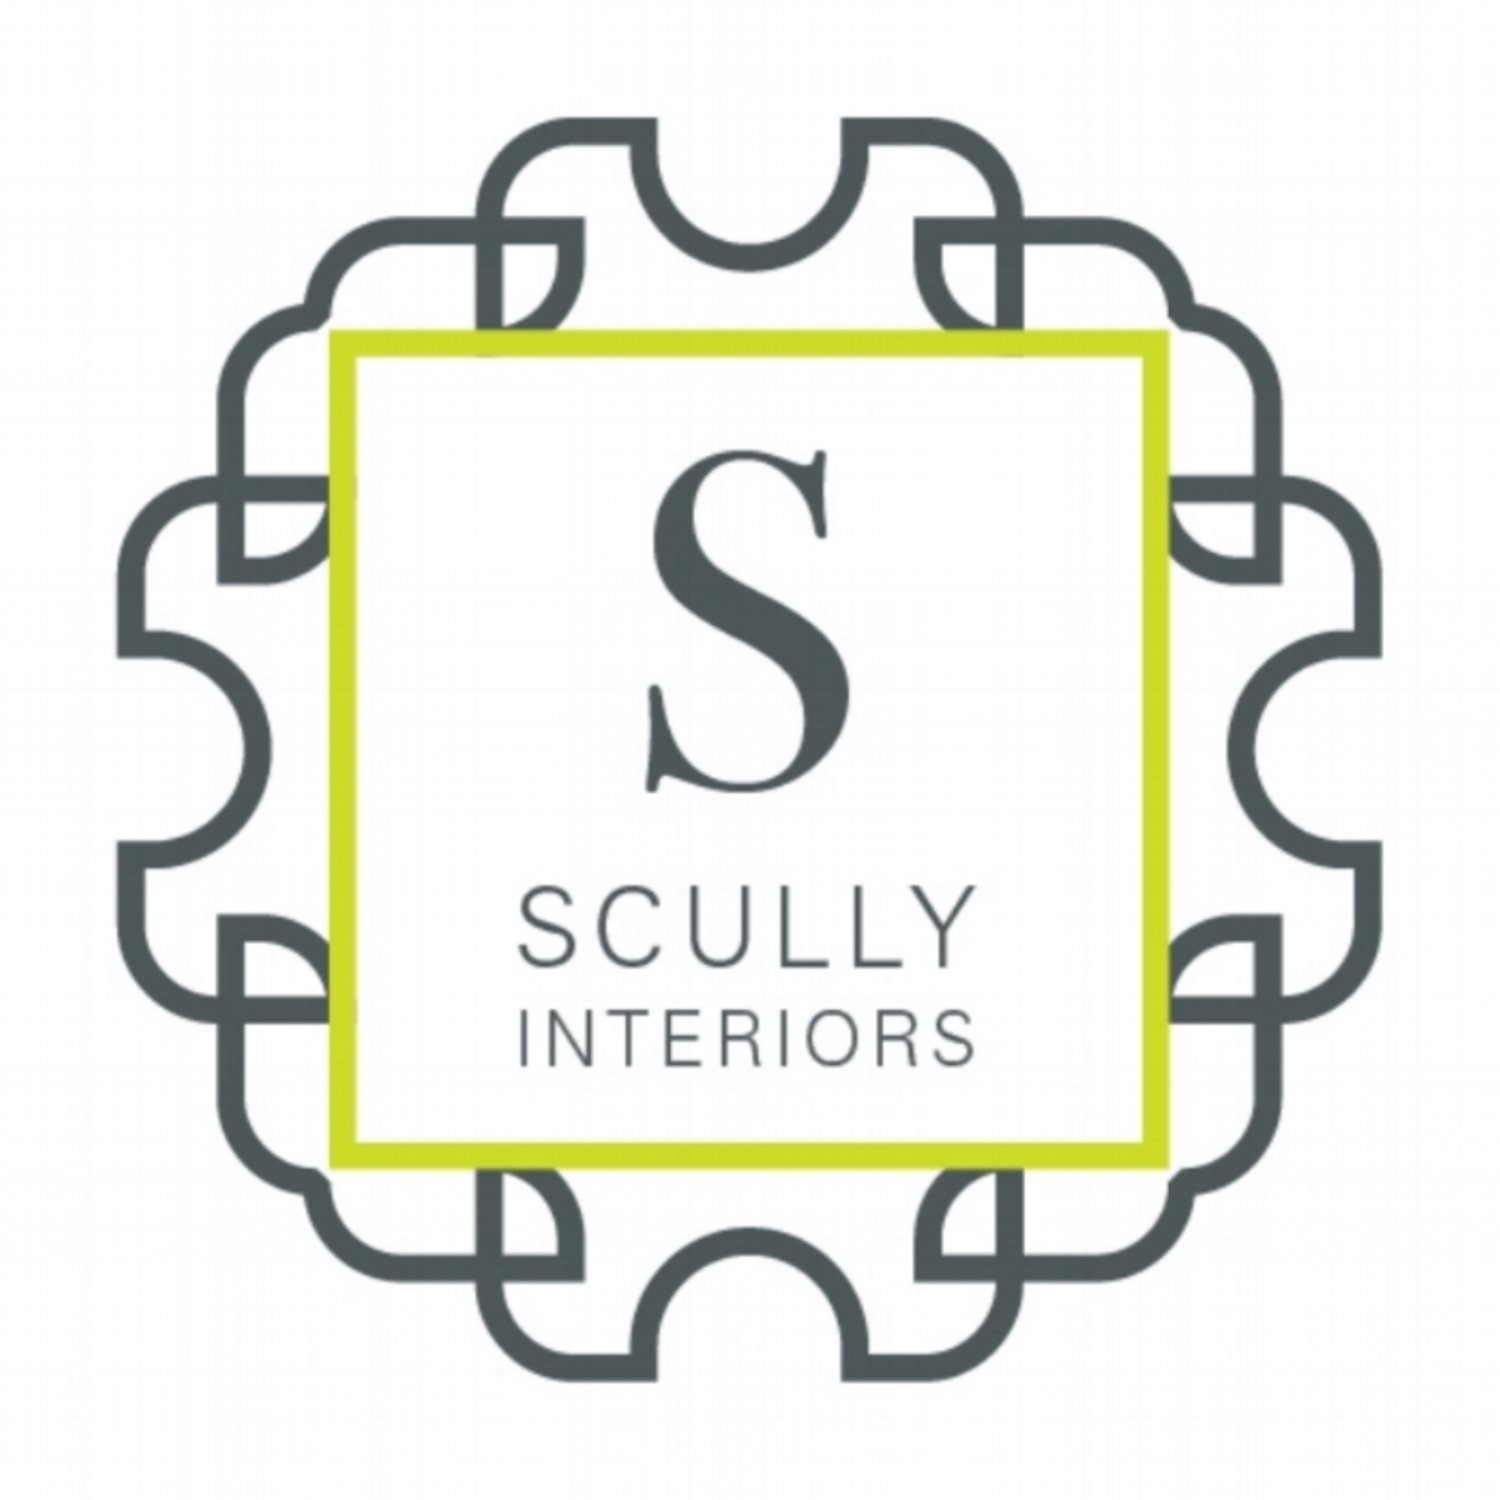 Scully Interiors